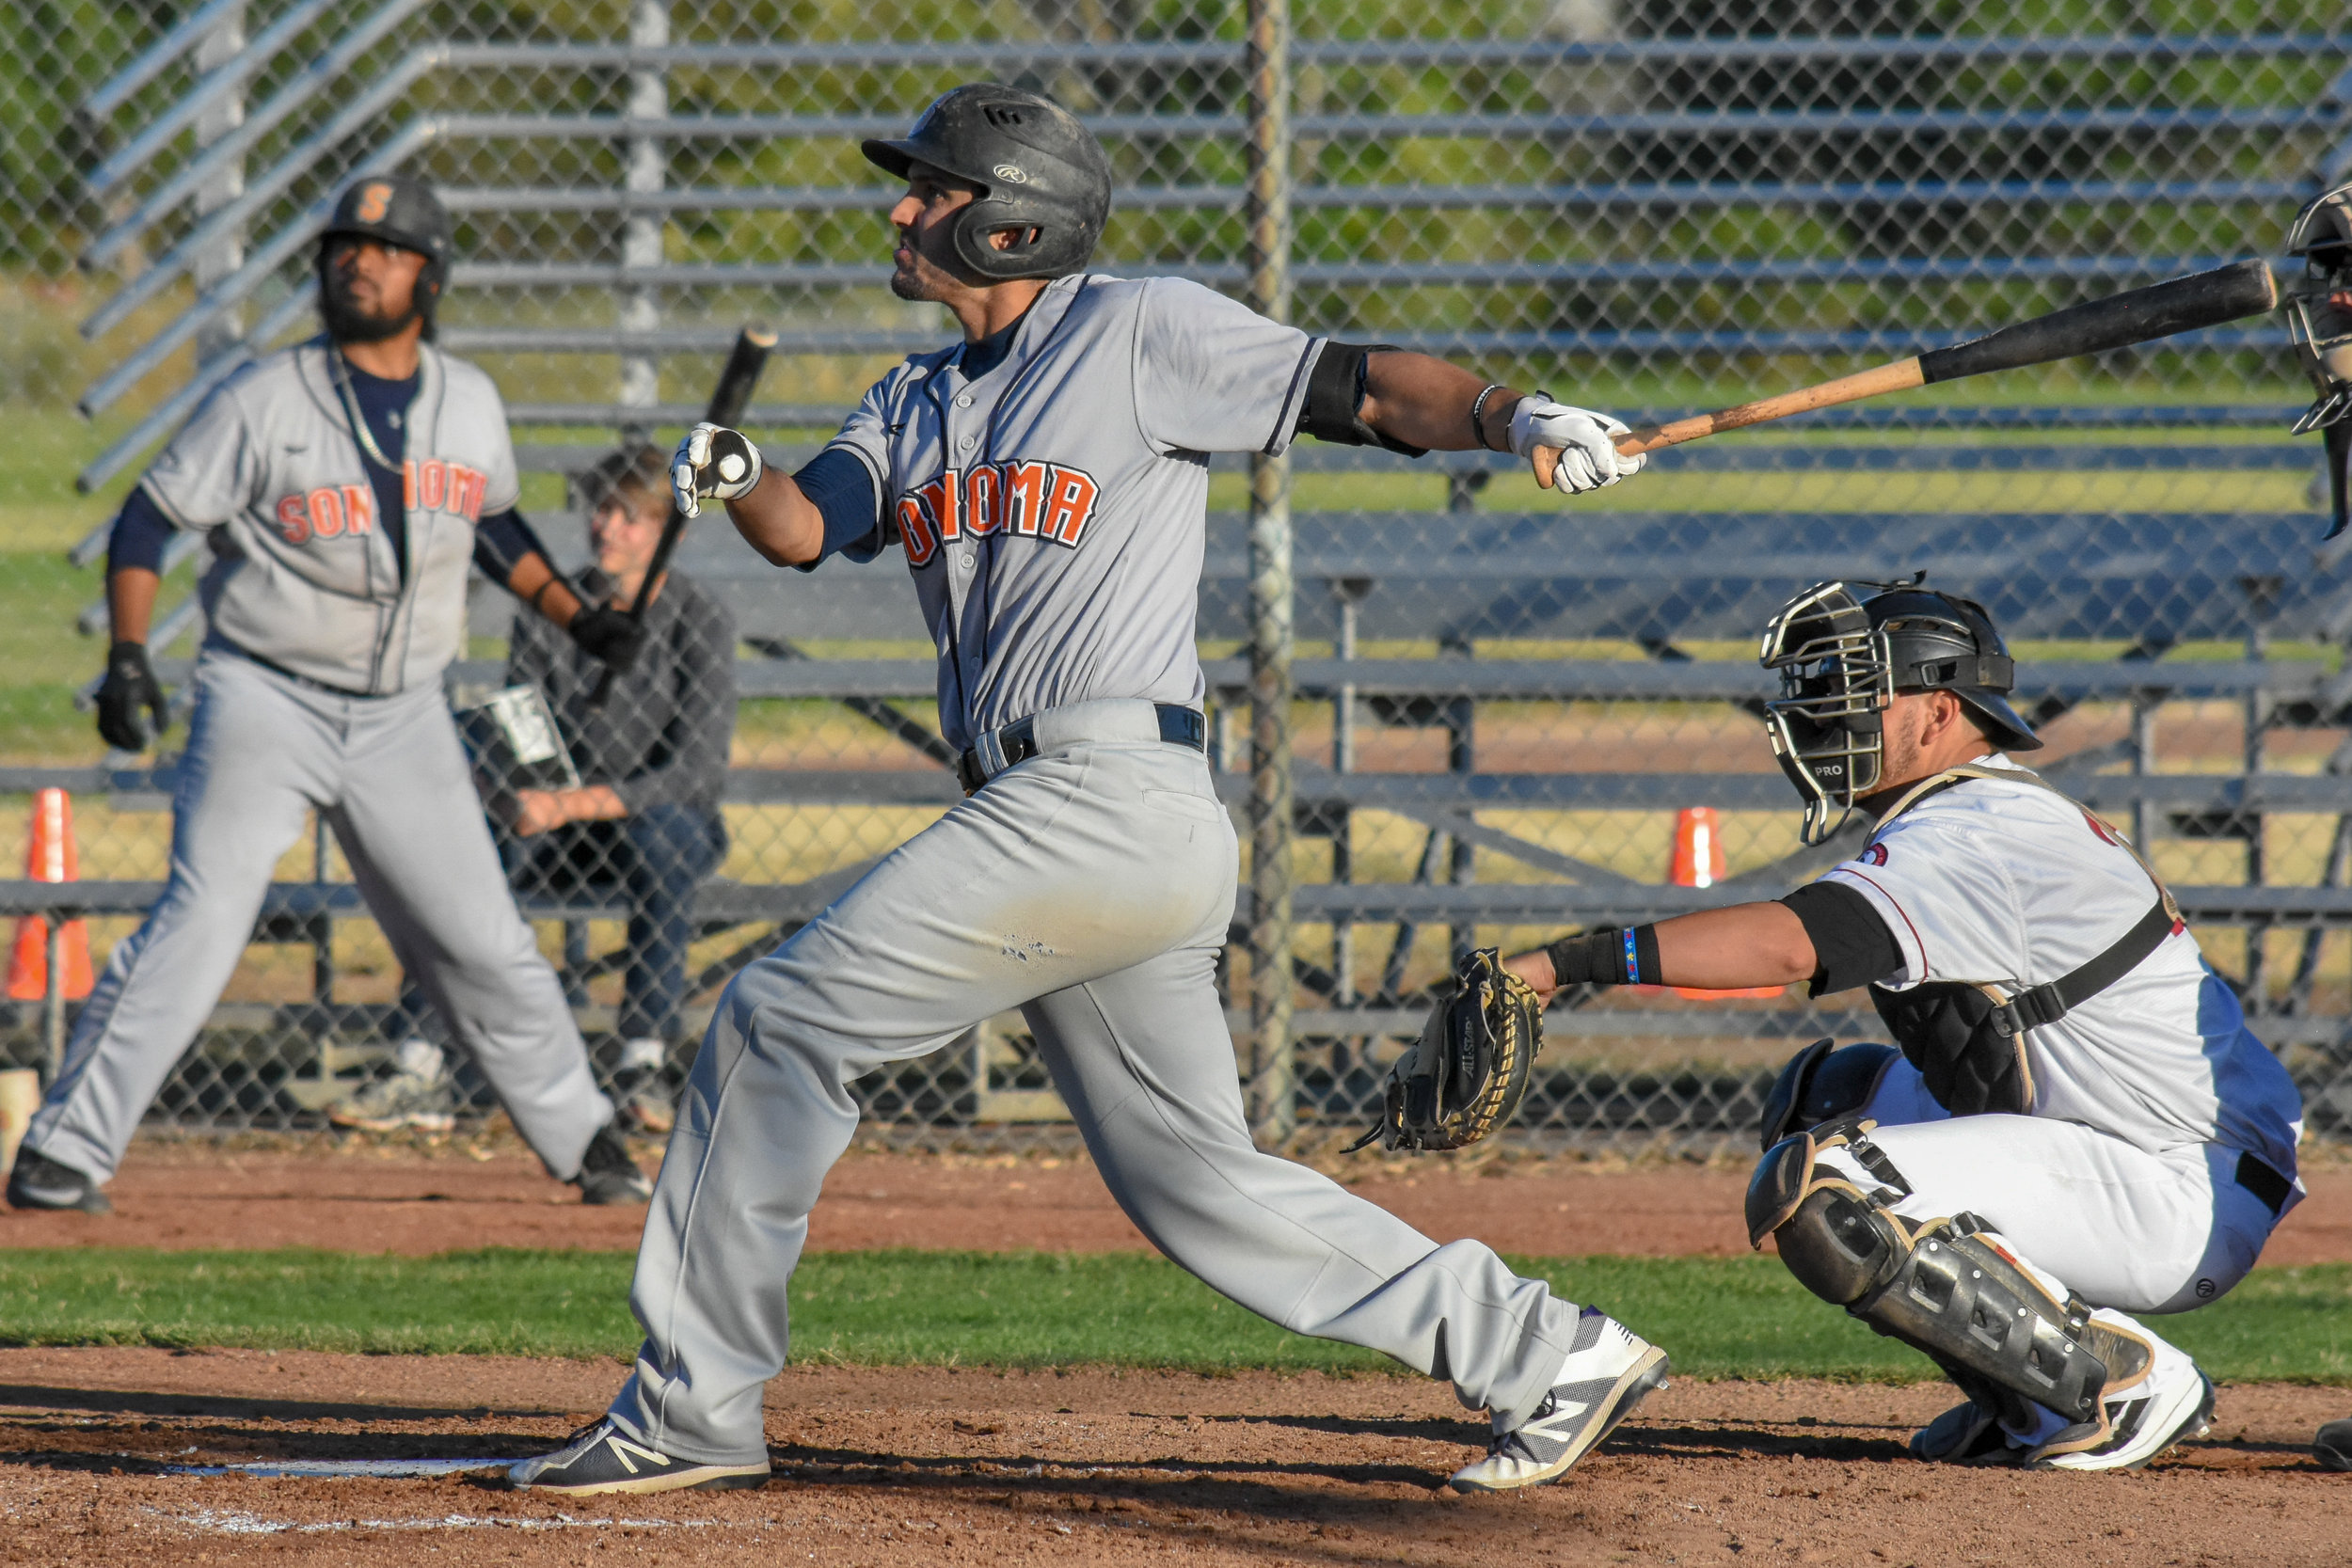 Kenny Meimerstorf follows through on his team-leading 12th home run of the season, a two-run shot in the fourth inning on July 10, 2018 (James W. Toy III / Sonoma Stompers)